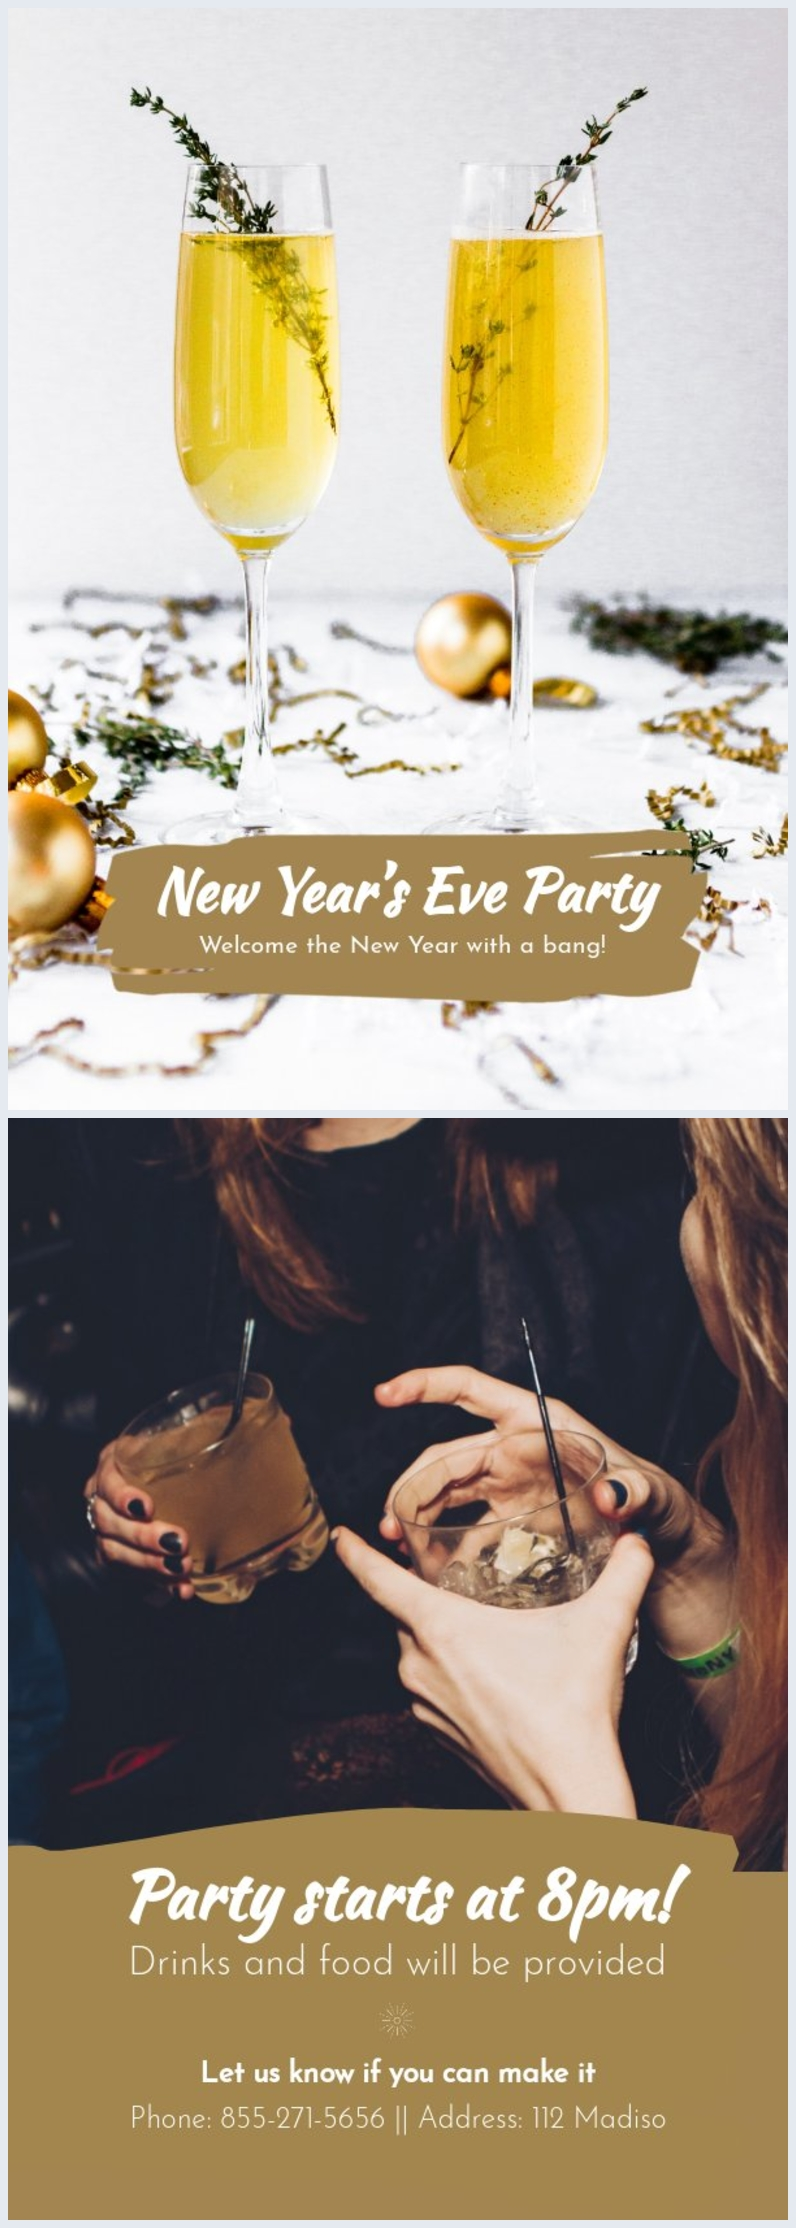 New Year's Party Invitation Template